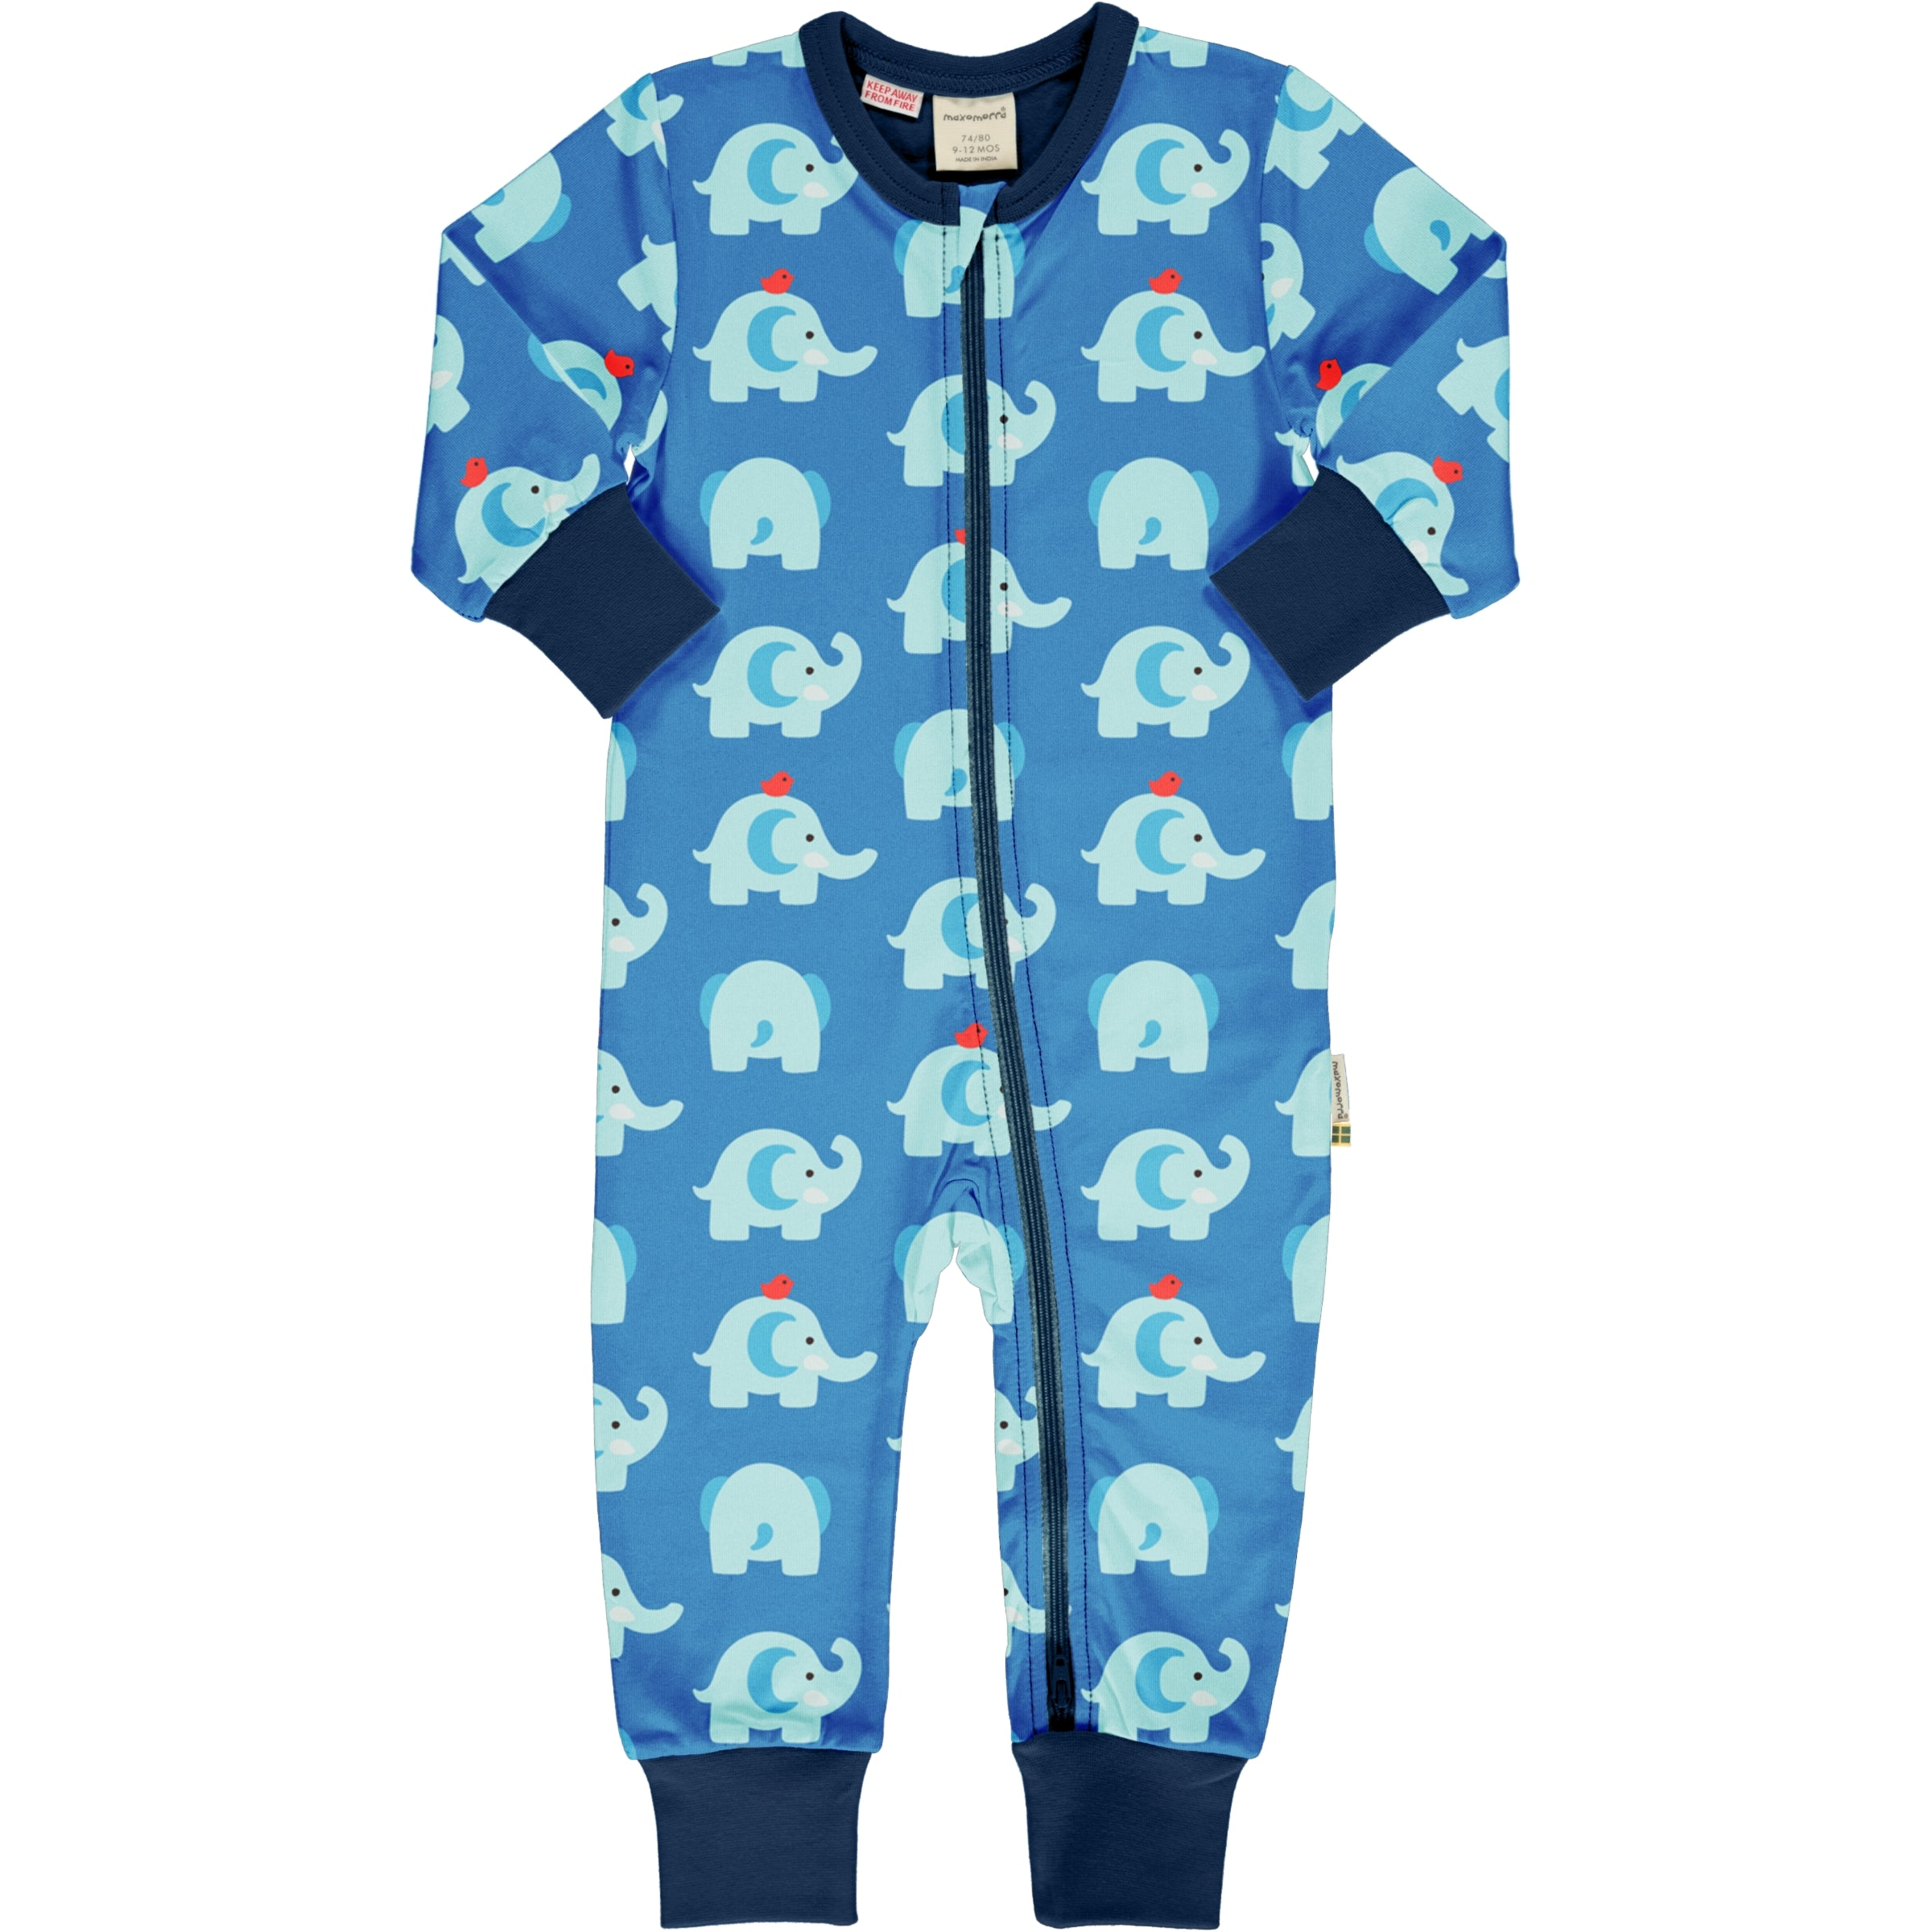 Maxomorra Rompersuit LS Elephant Friends,little-tiger-togs.